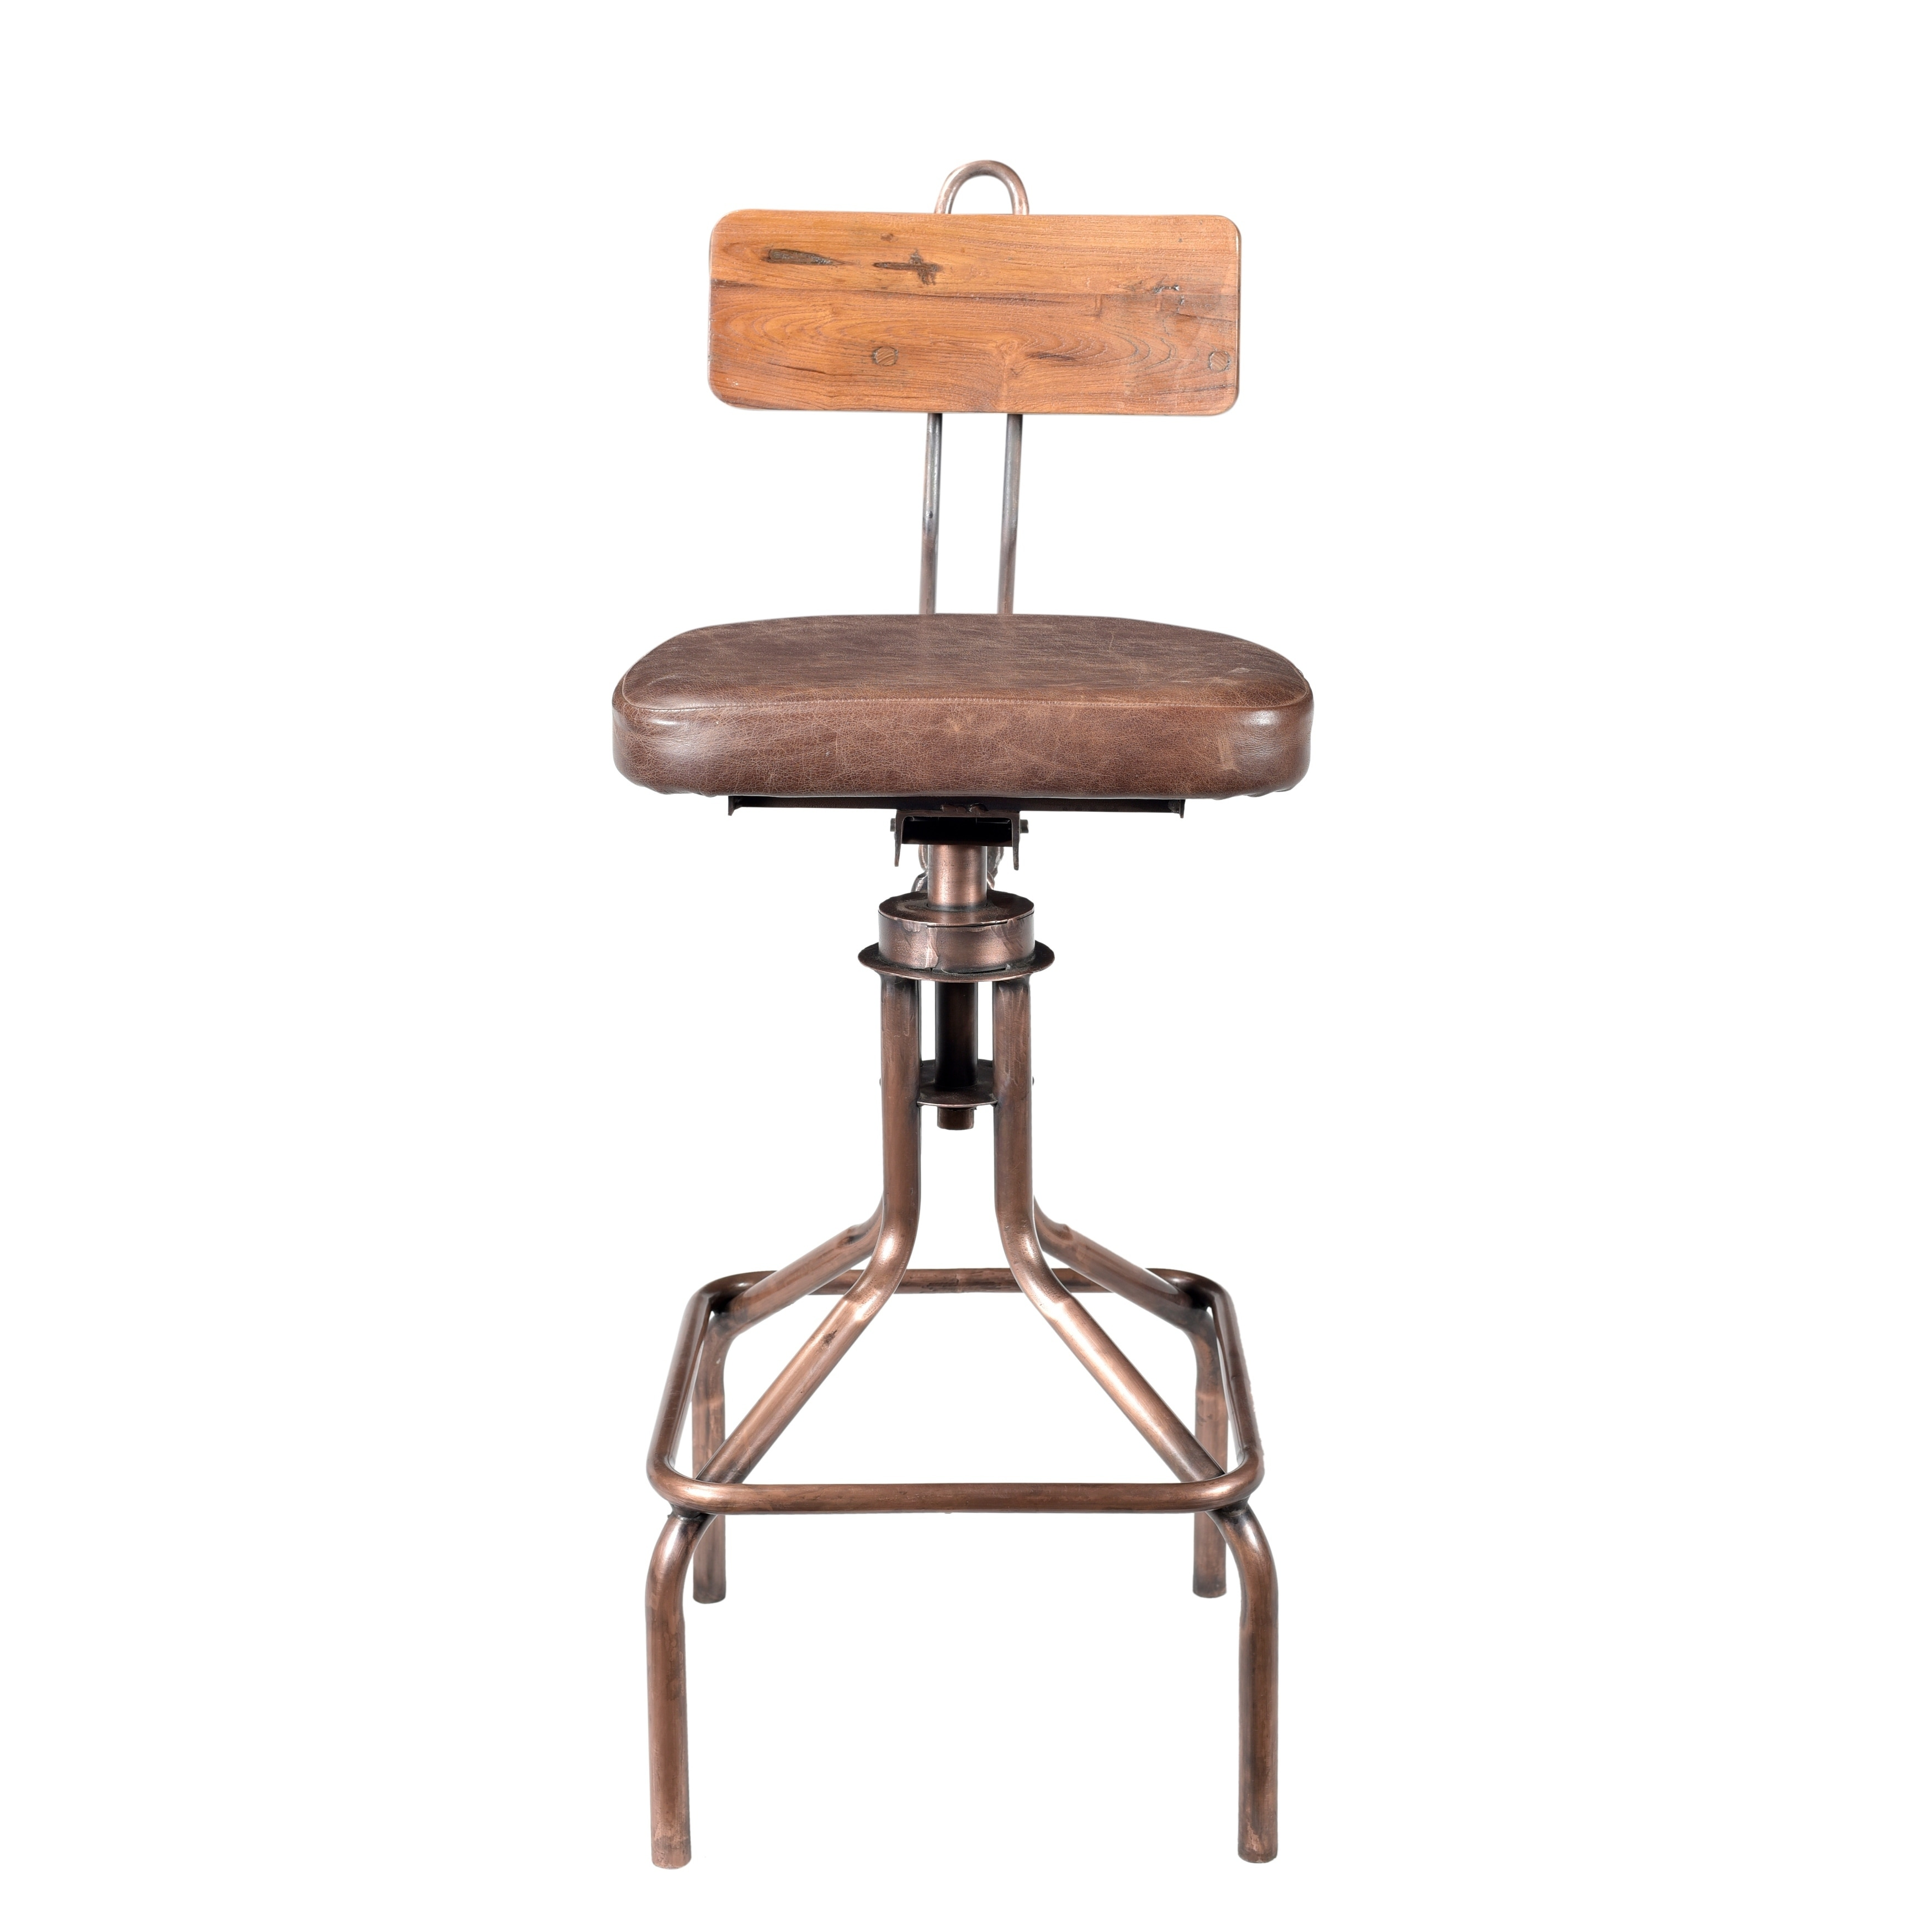 Aurelle Home Casual Rustic Copper Bar Stool Free Shipping Today 18613270